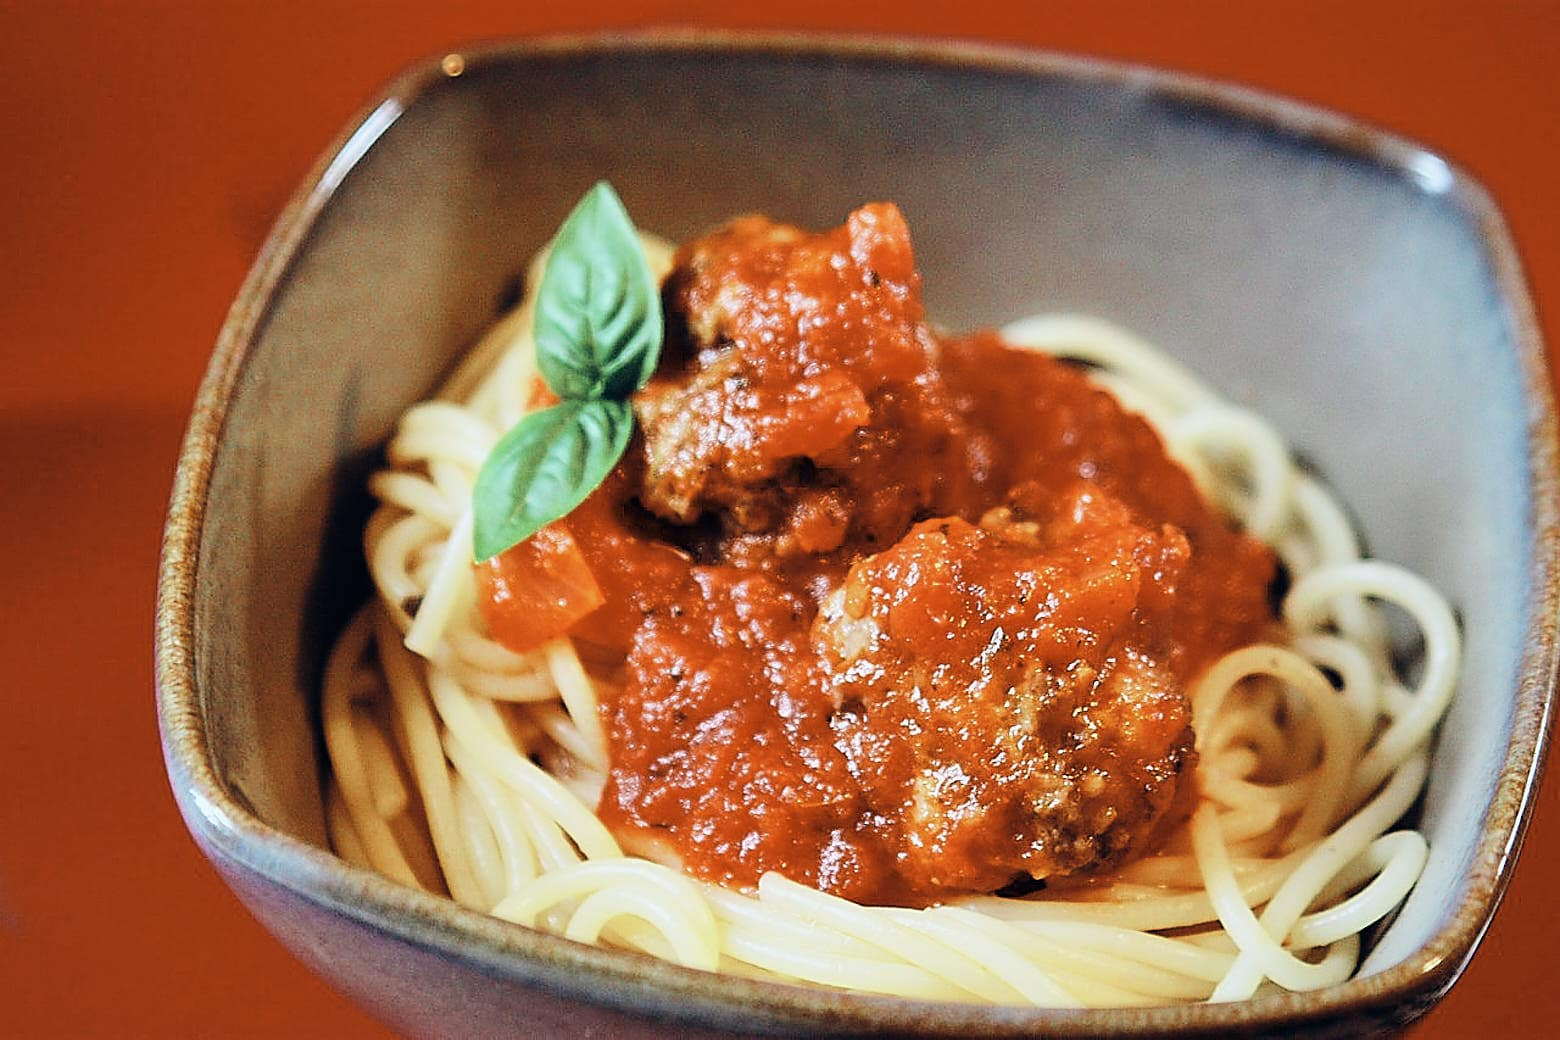 Spaghetti and meatballs in a bowl with tomato sauce and basil.